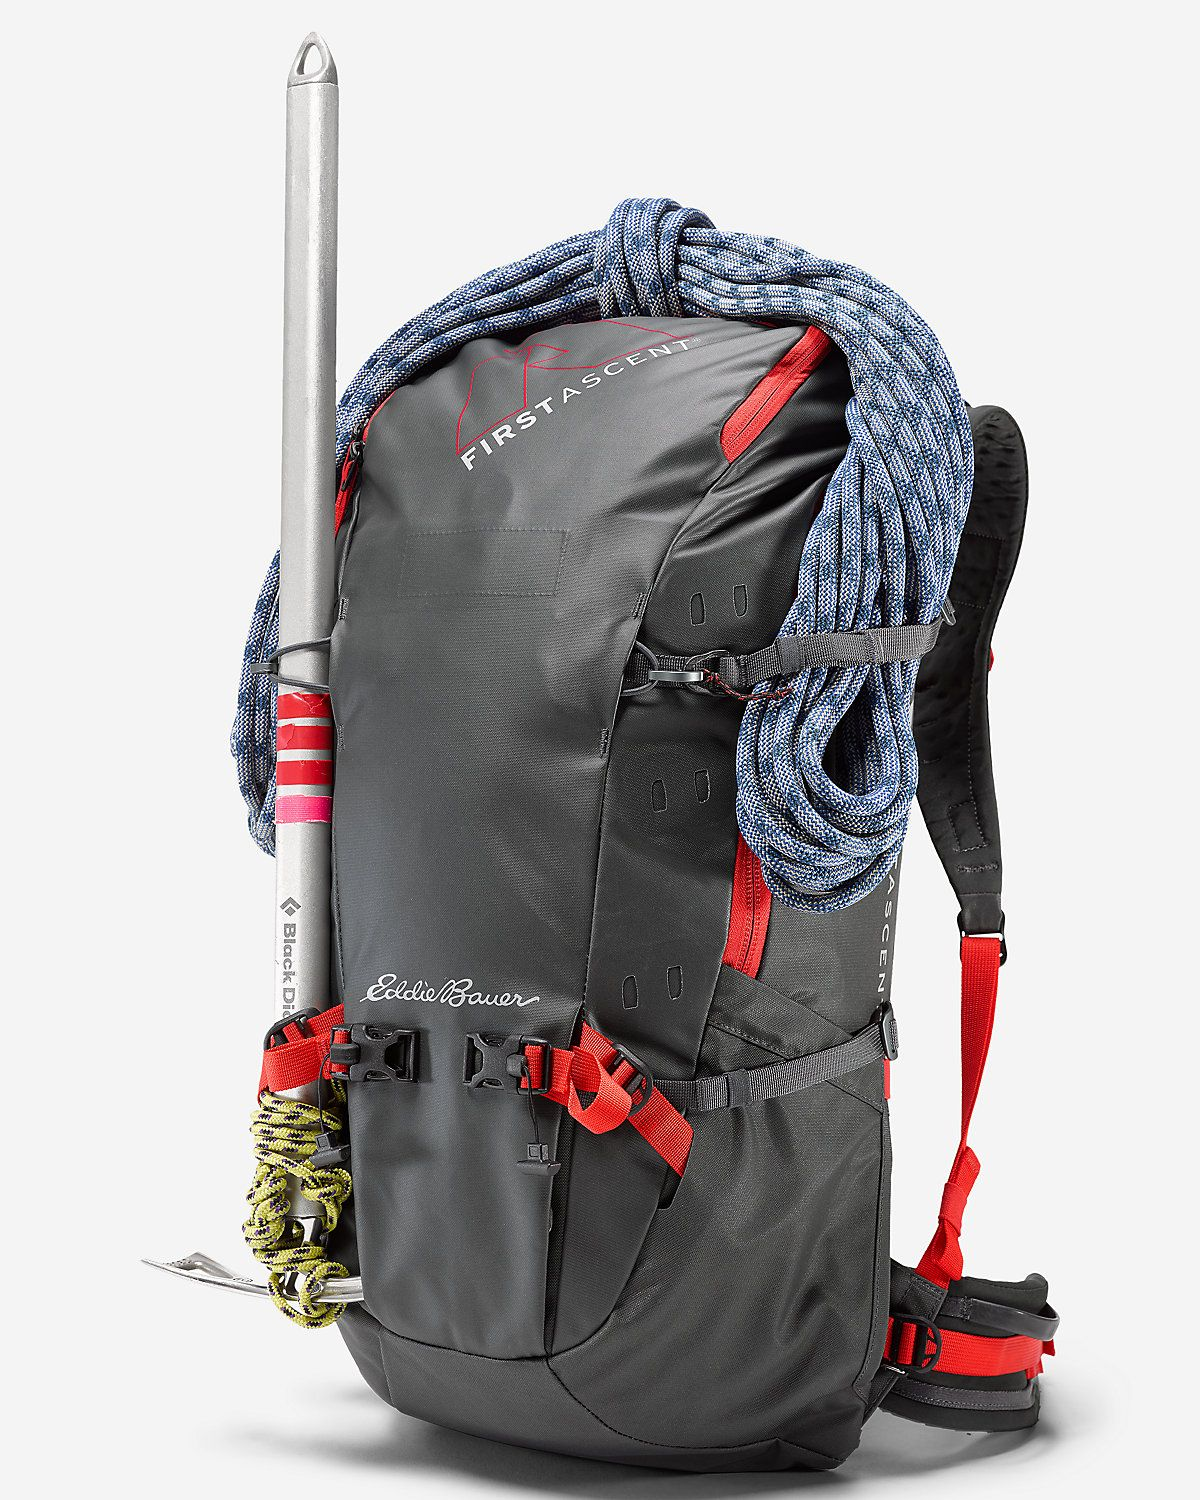 64a9a33e4 Alchemist 25/35 Pack in 2019 | Bags | Golf bags, Backpacking gear ...